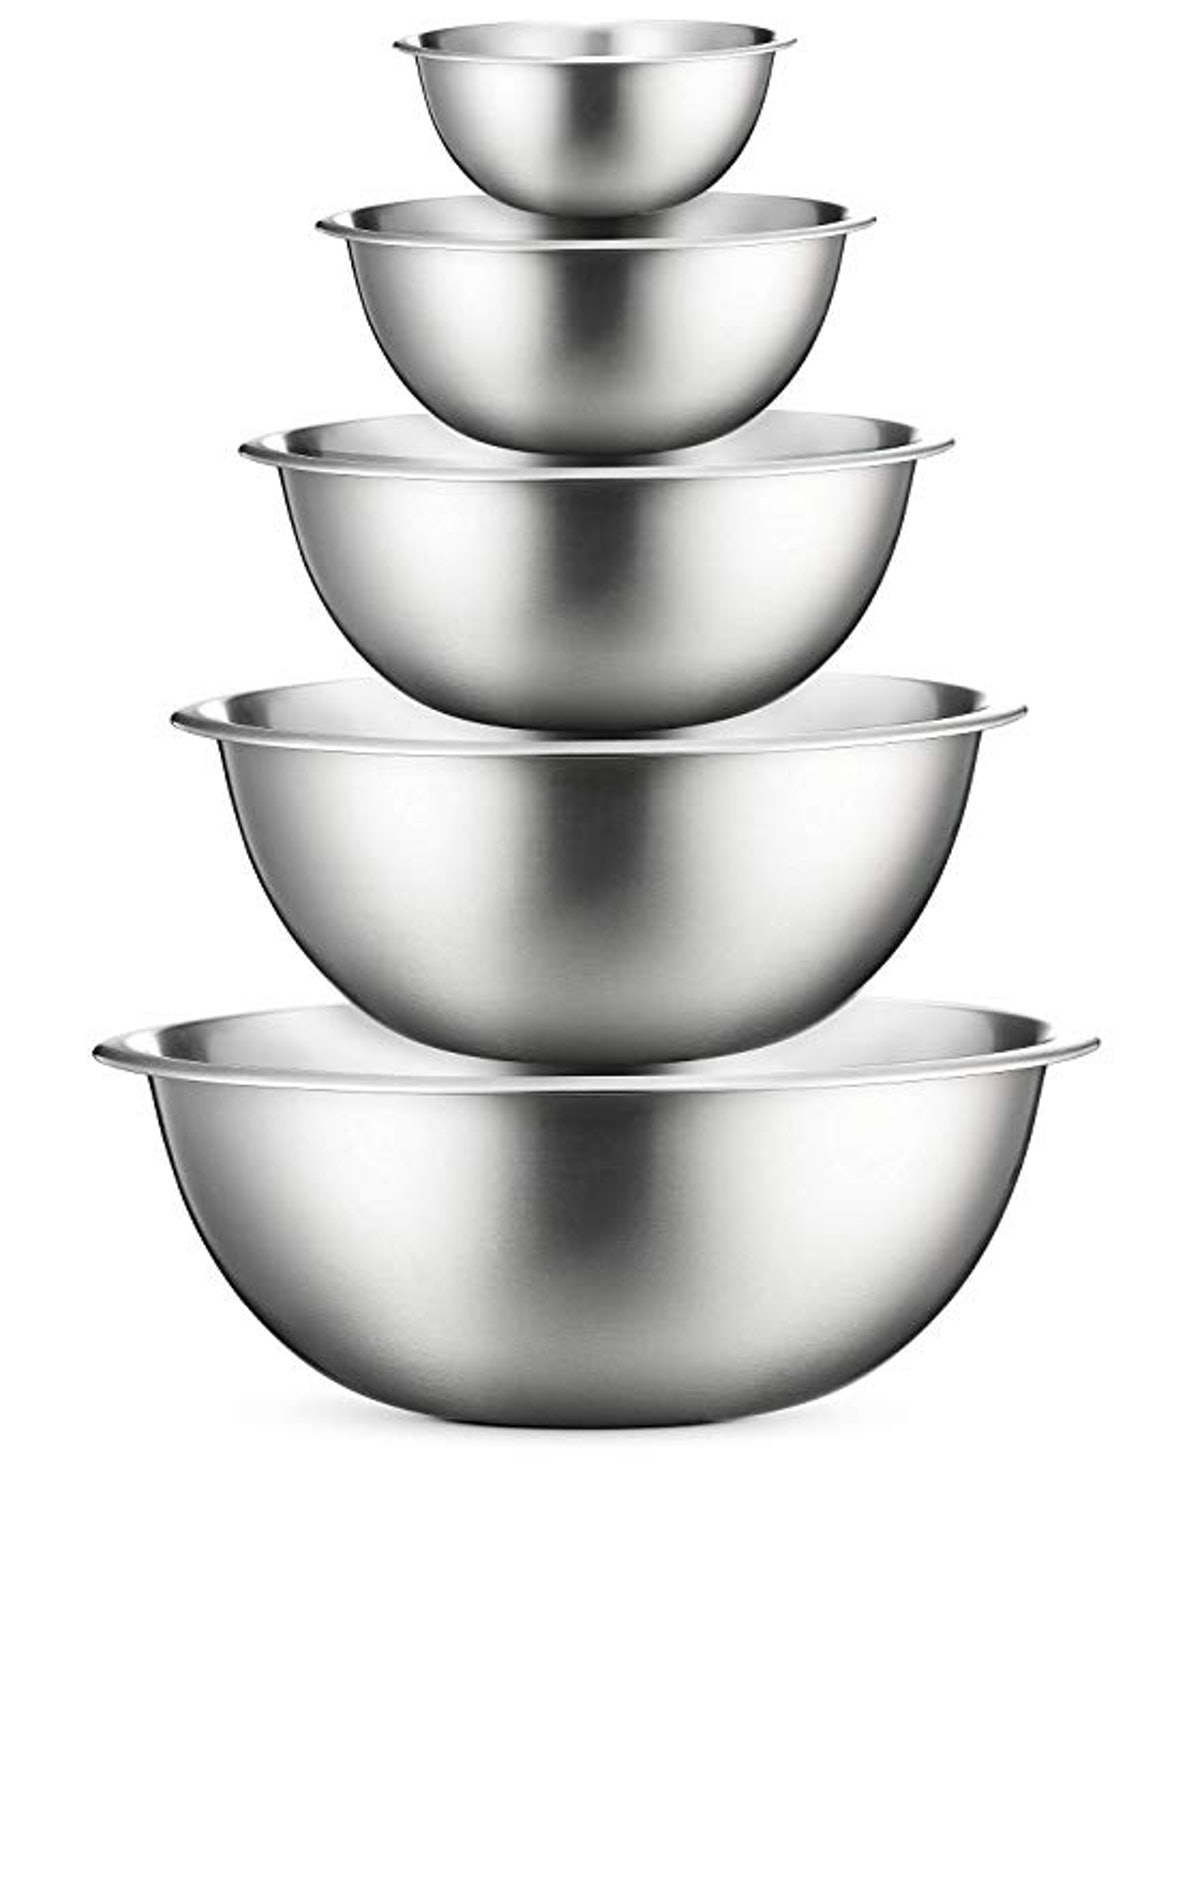 FineDine Stainless Steel Mixing Bowl Set (5-Pack)